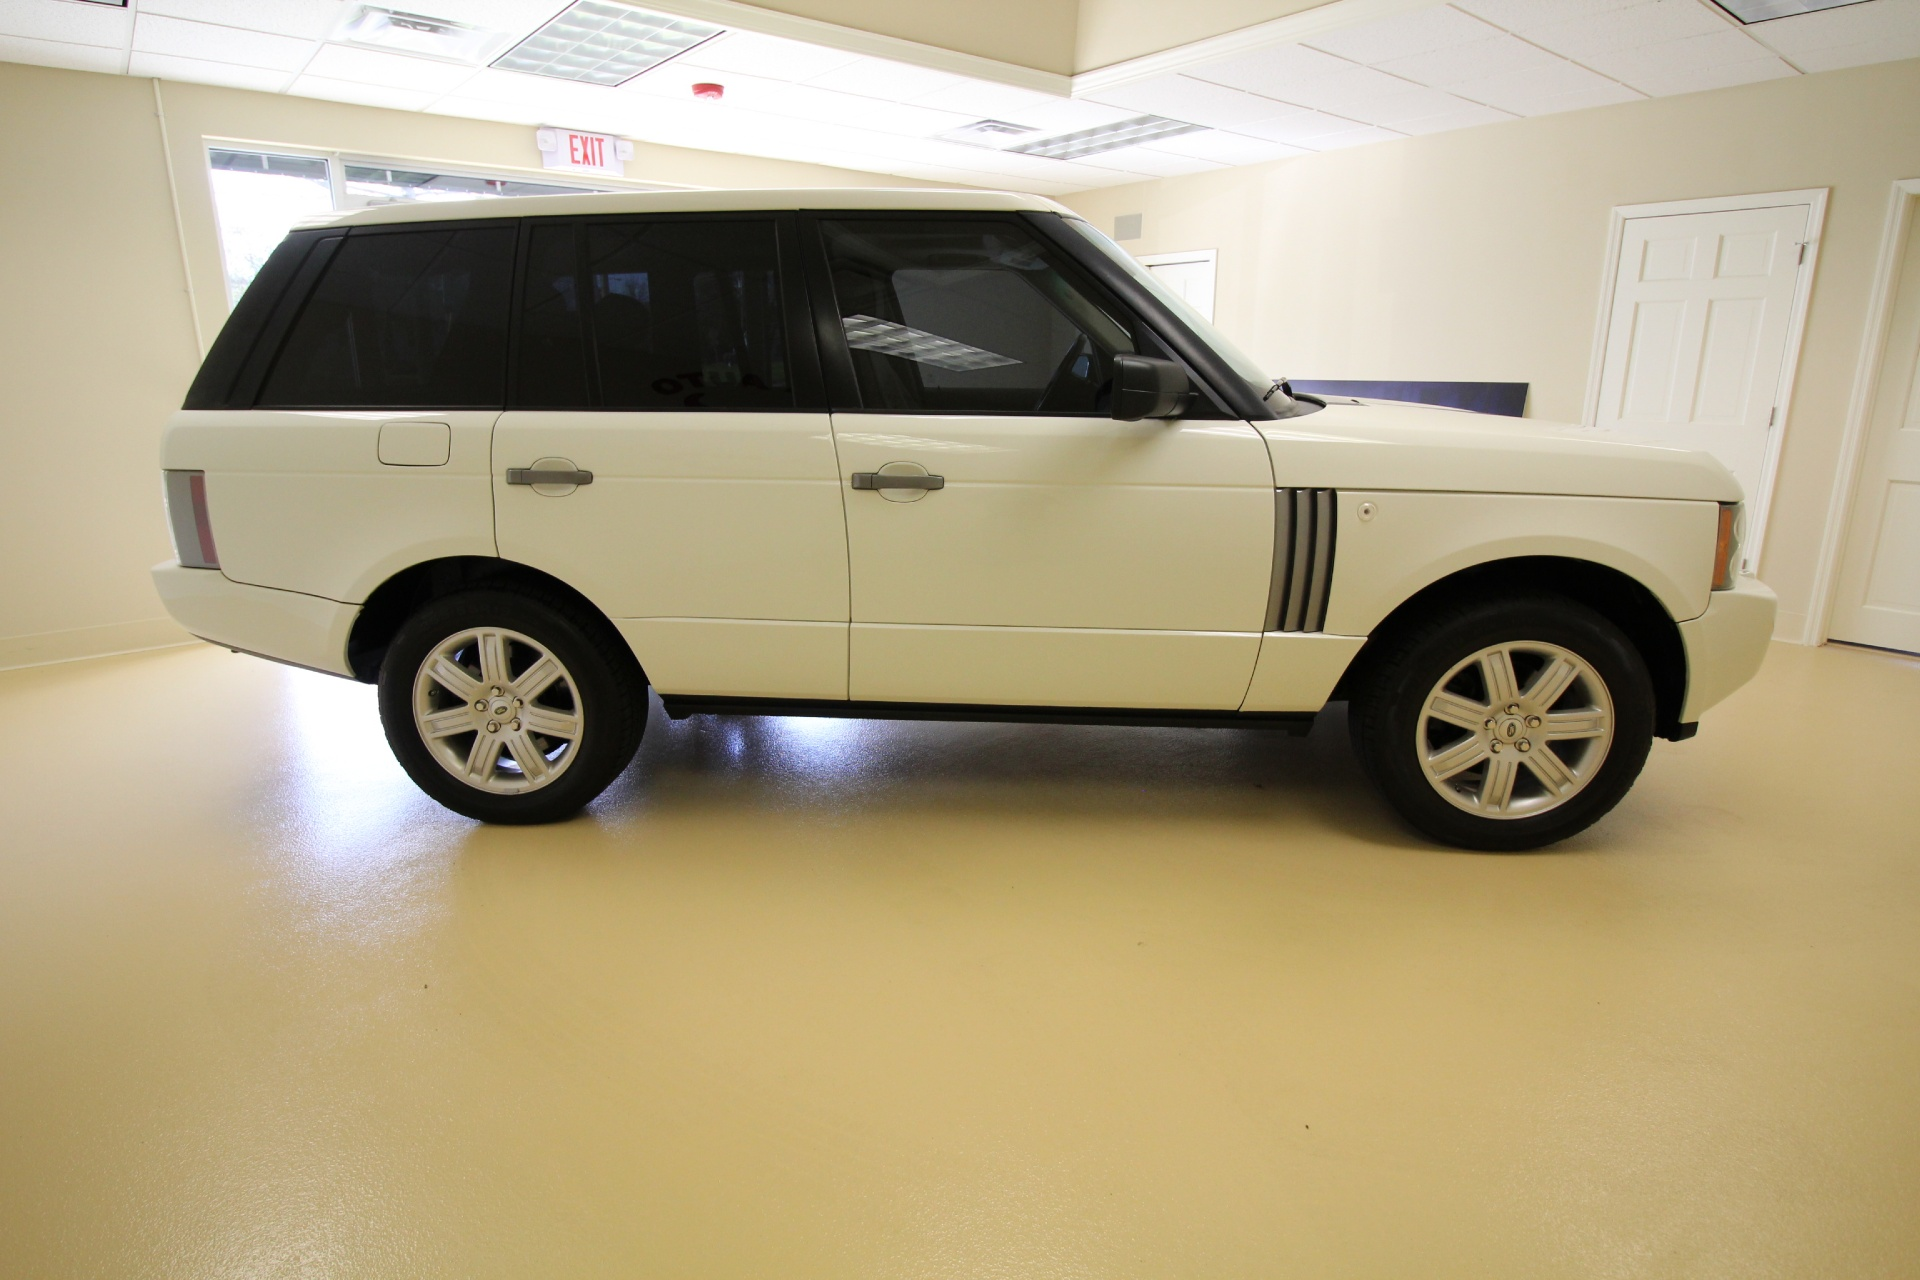 2008 land rover range rover hse super clean very nice stock 16081 for sale near albany ny. Black Bedroom Furniture Sets. Home Design Ideas